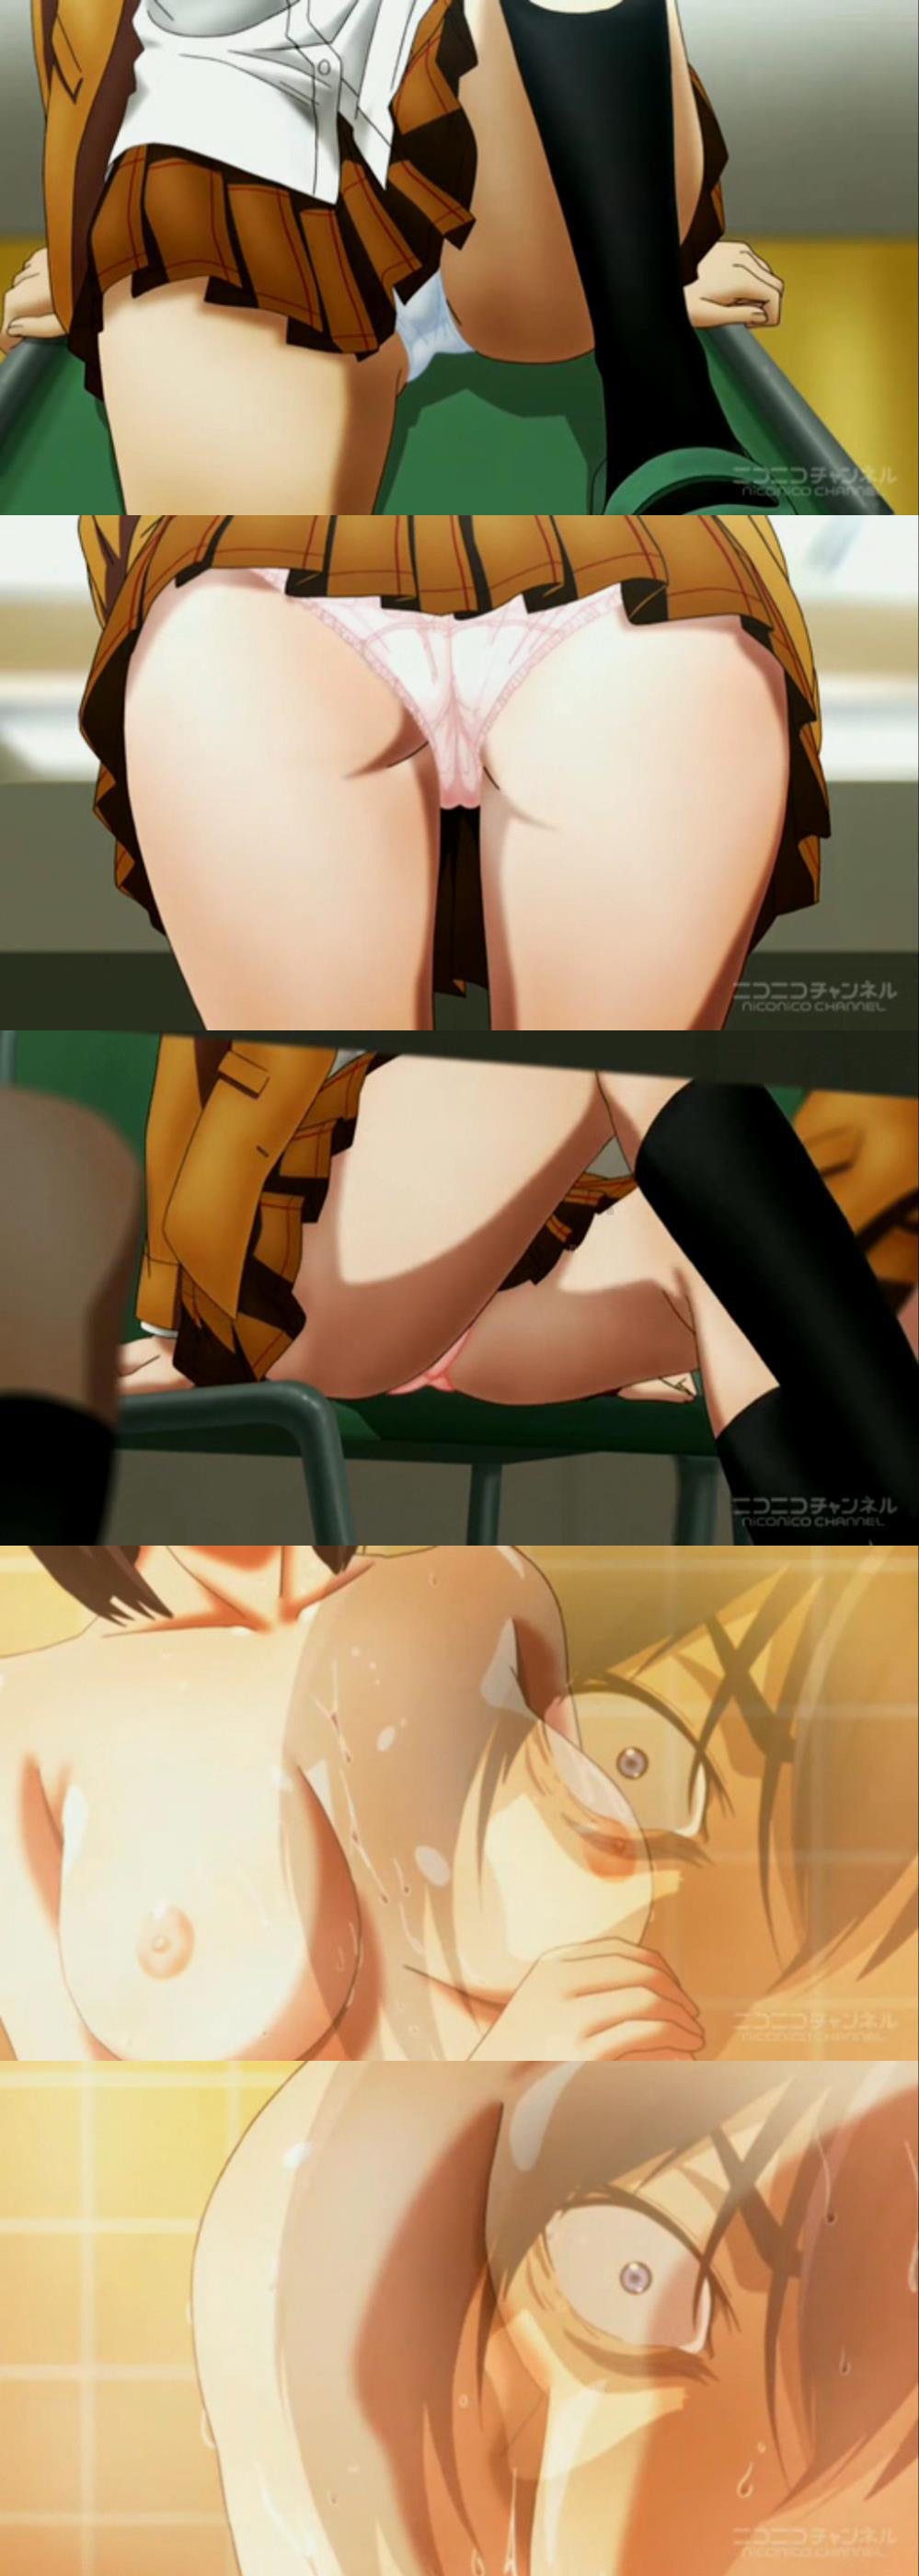 prison school uncensored